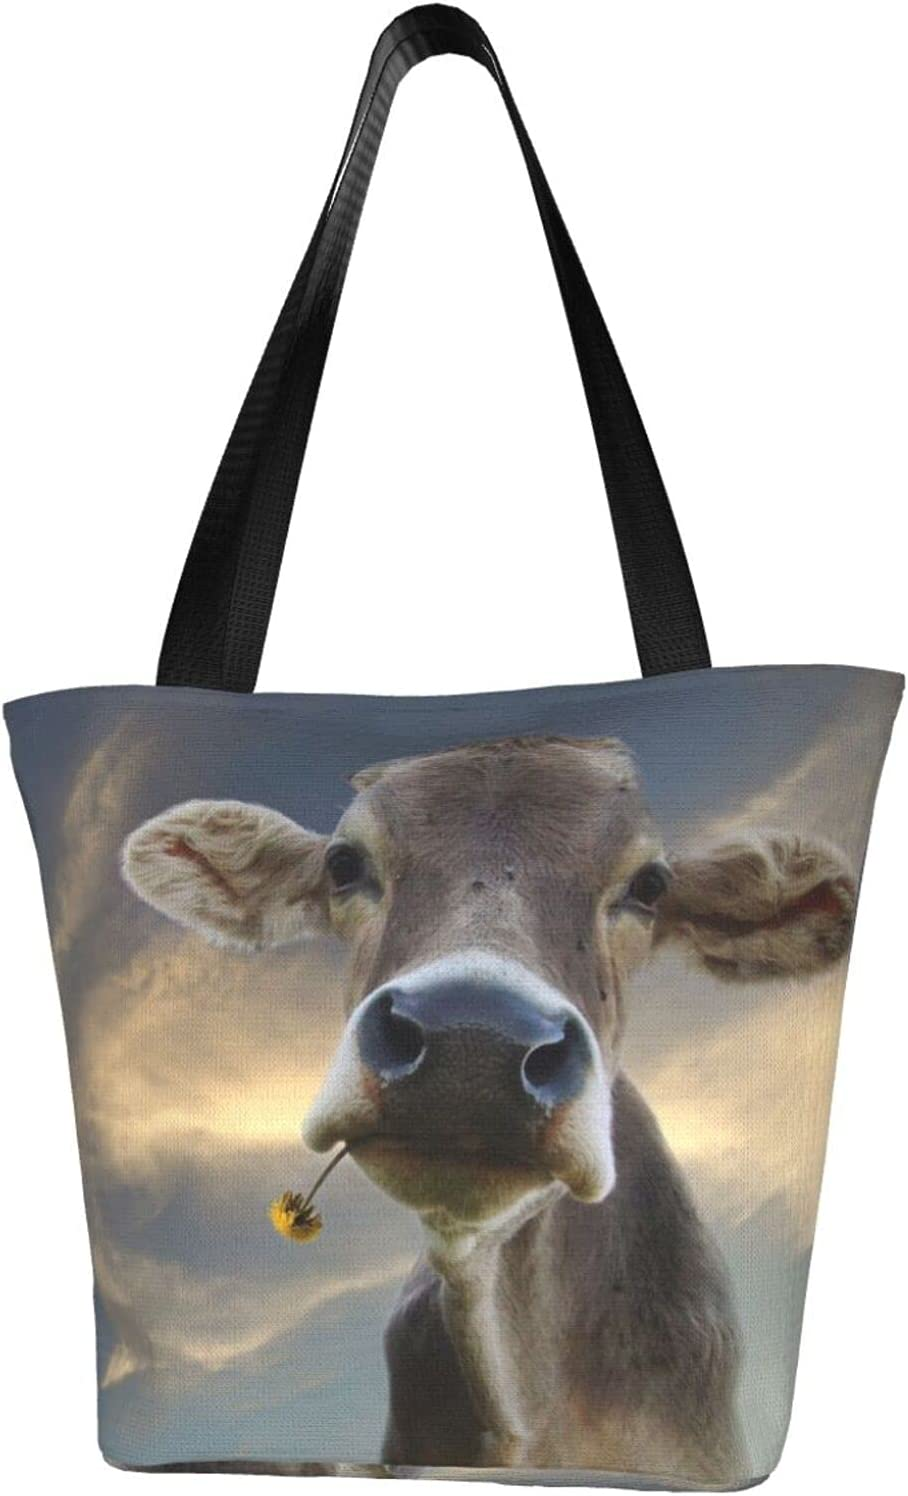 famous pengyong Cute Animal Funny Cow Water Resistant Extra Canva Large National products